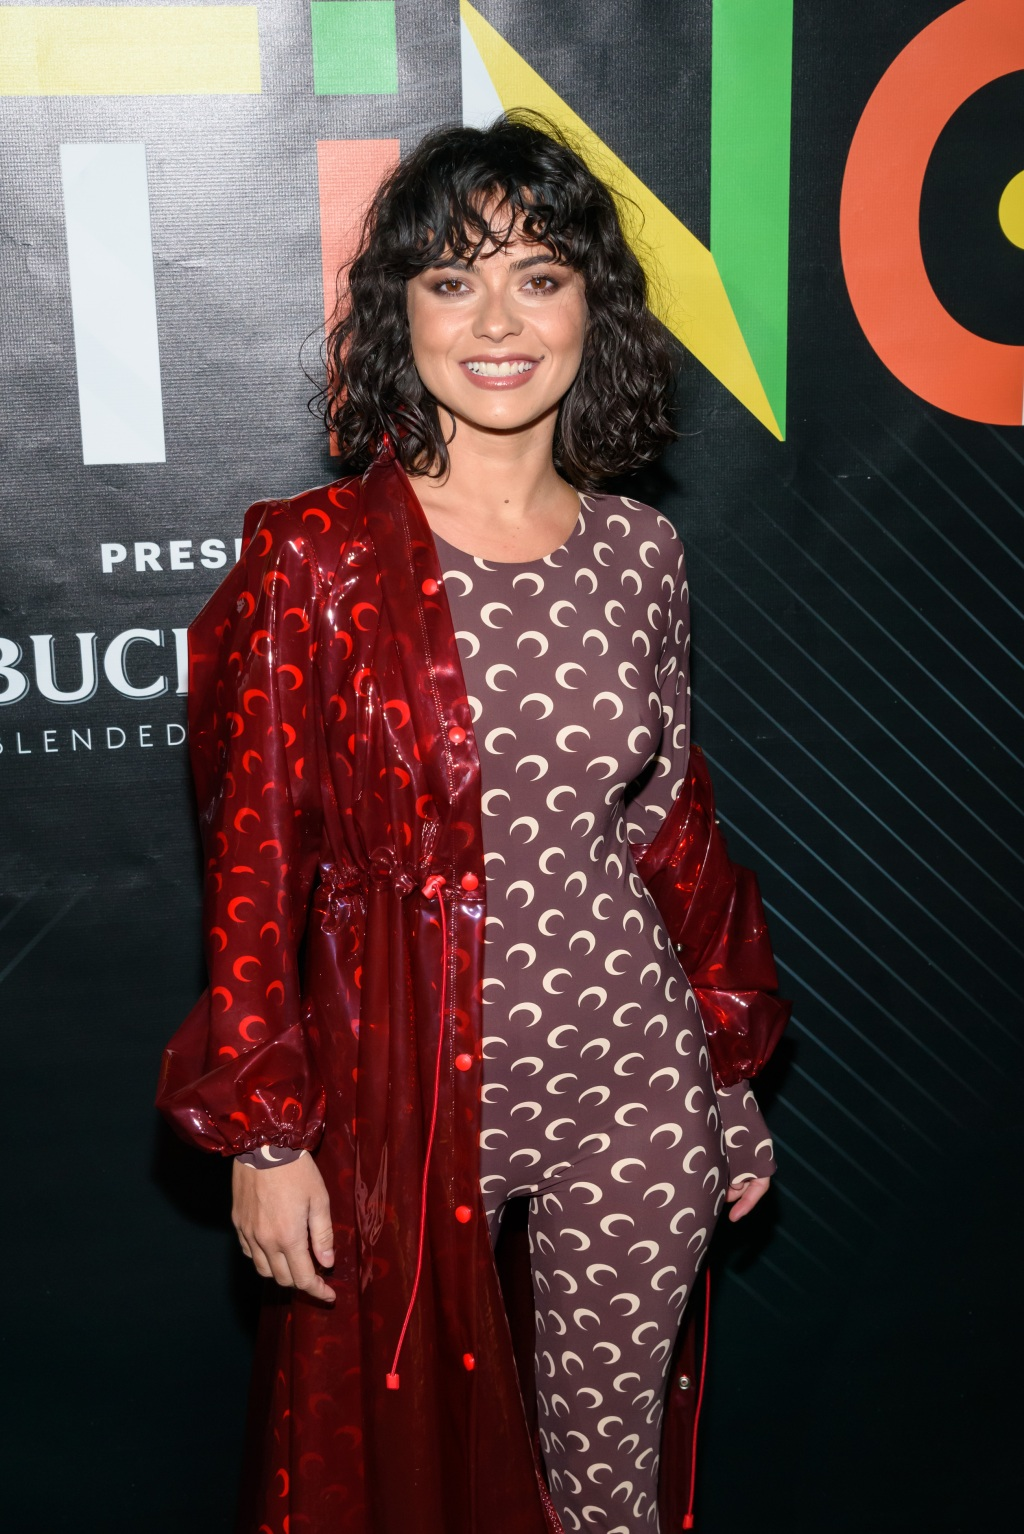 Romanian singer-songwriter Inna made a special appearance on the Rolling Stone Latino red carpet.